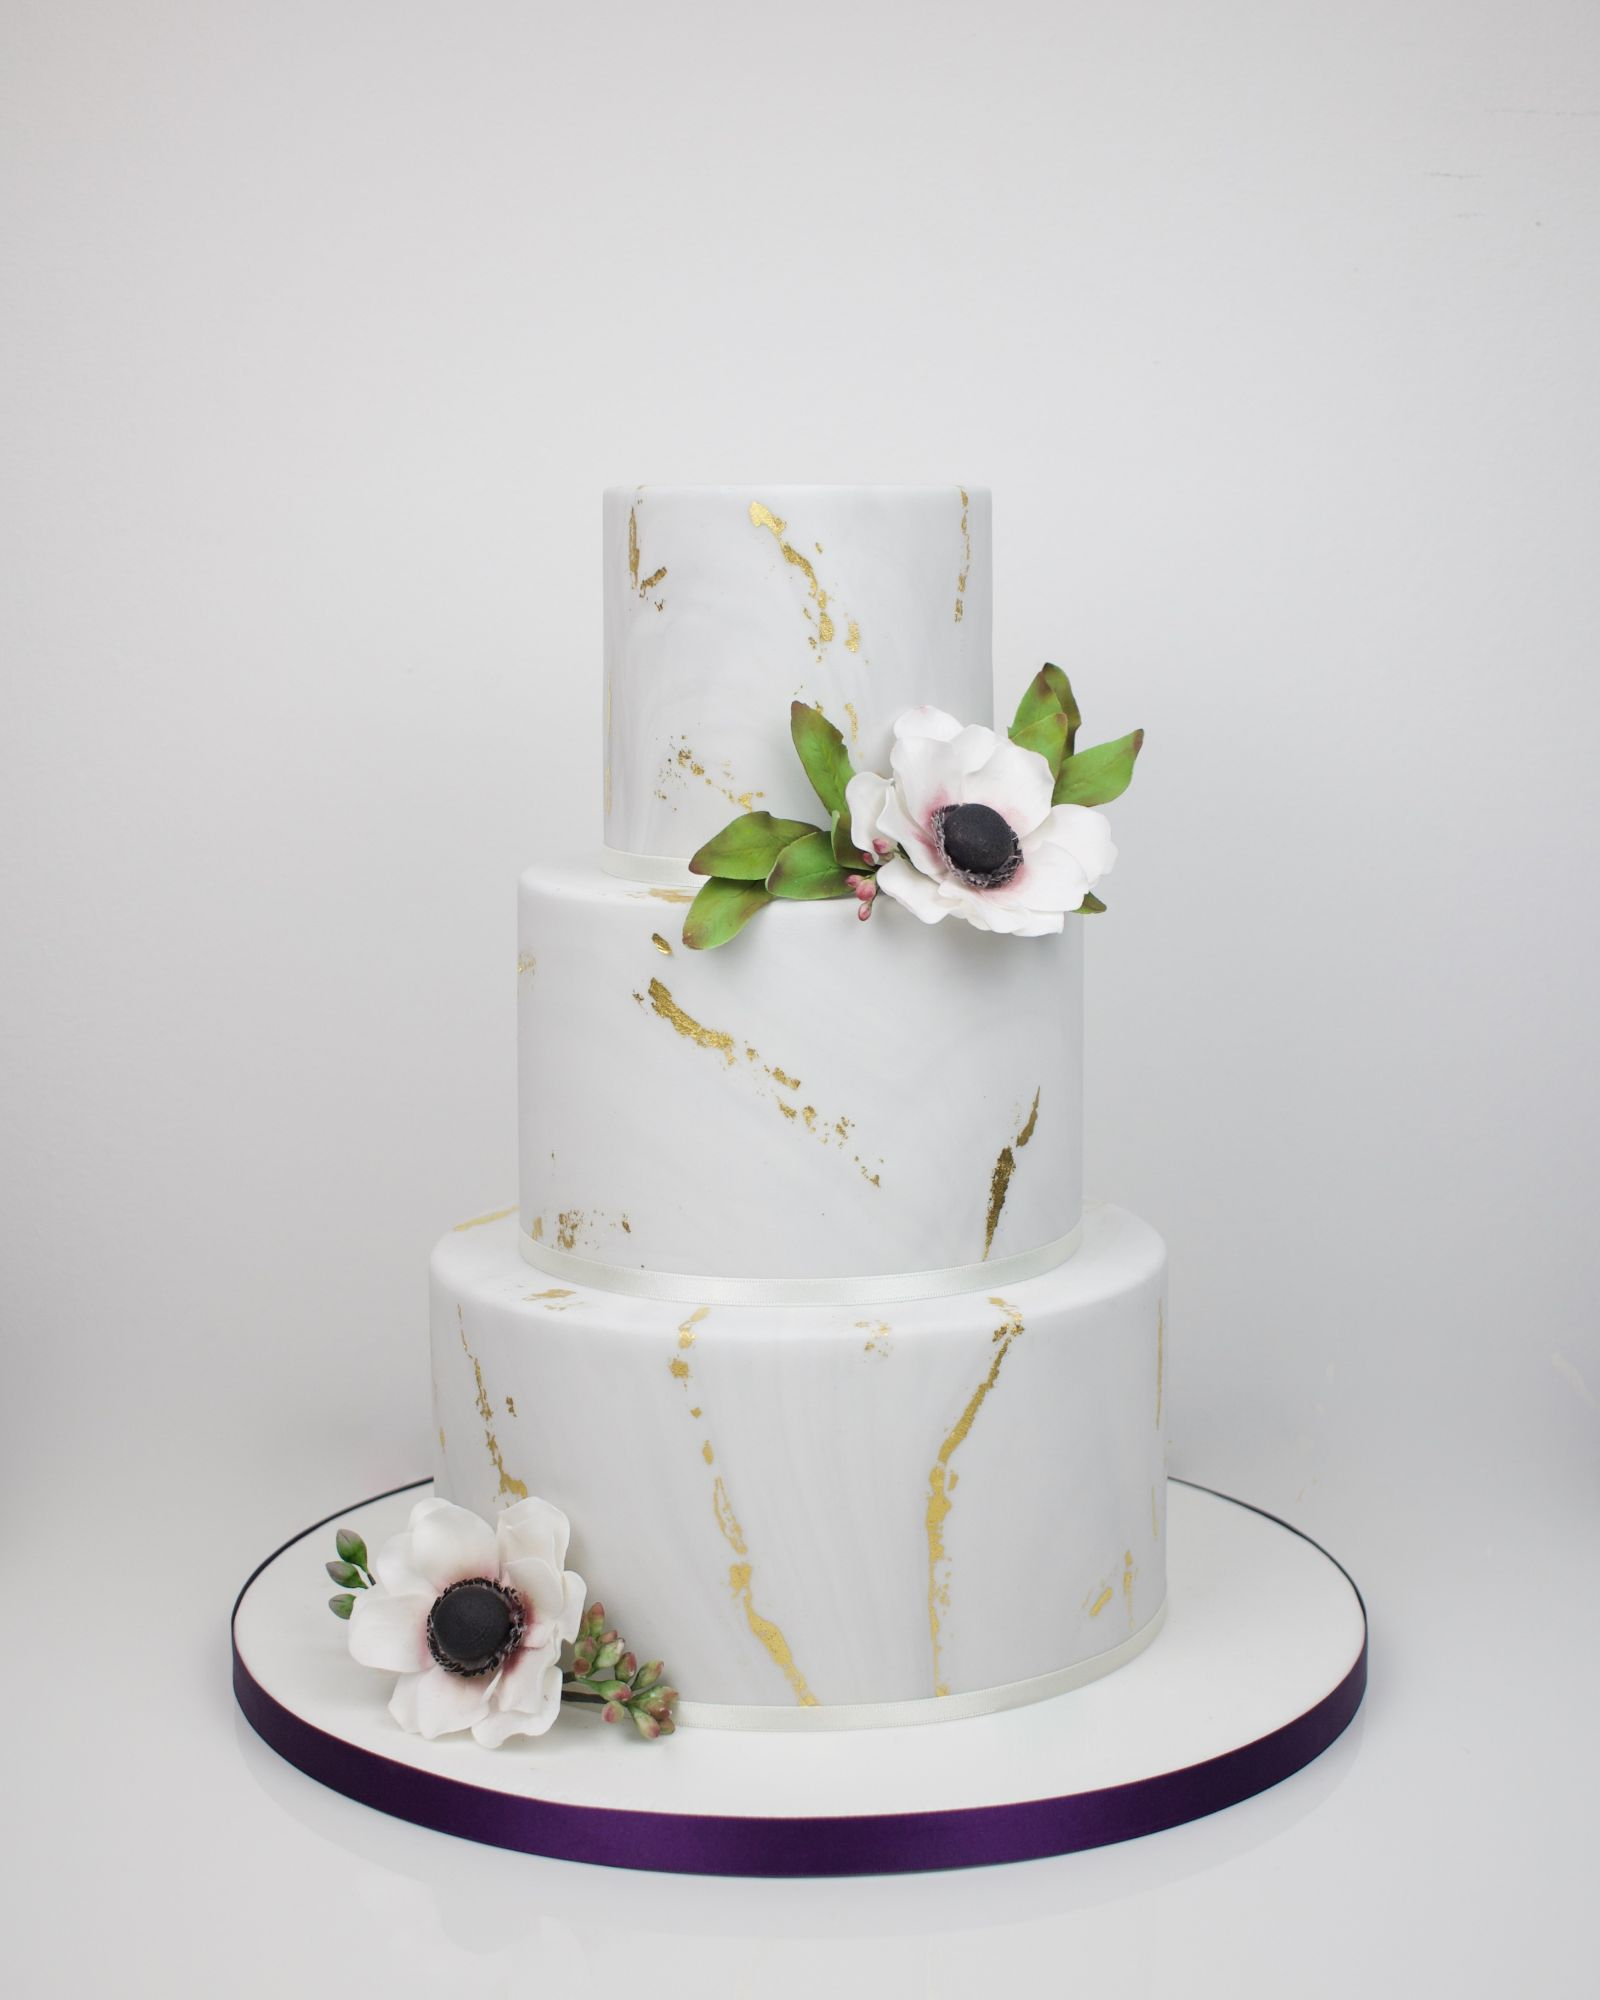 Marble effect with gold leaf and sugar  anemones